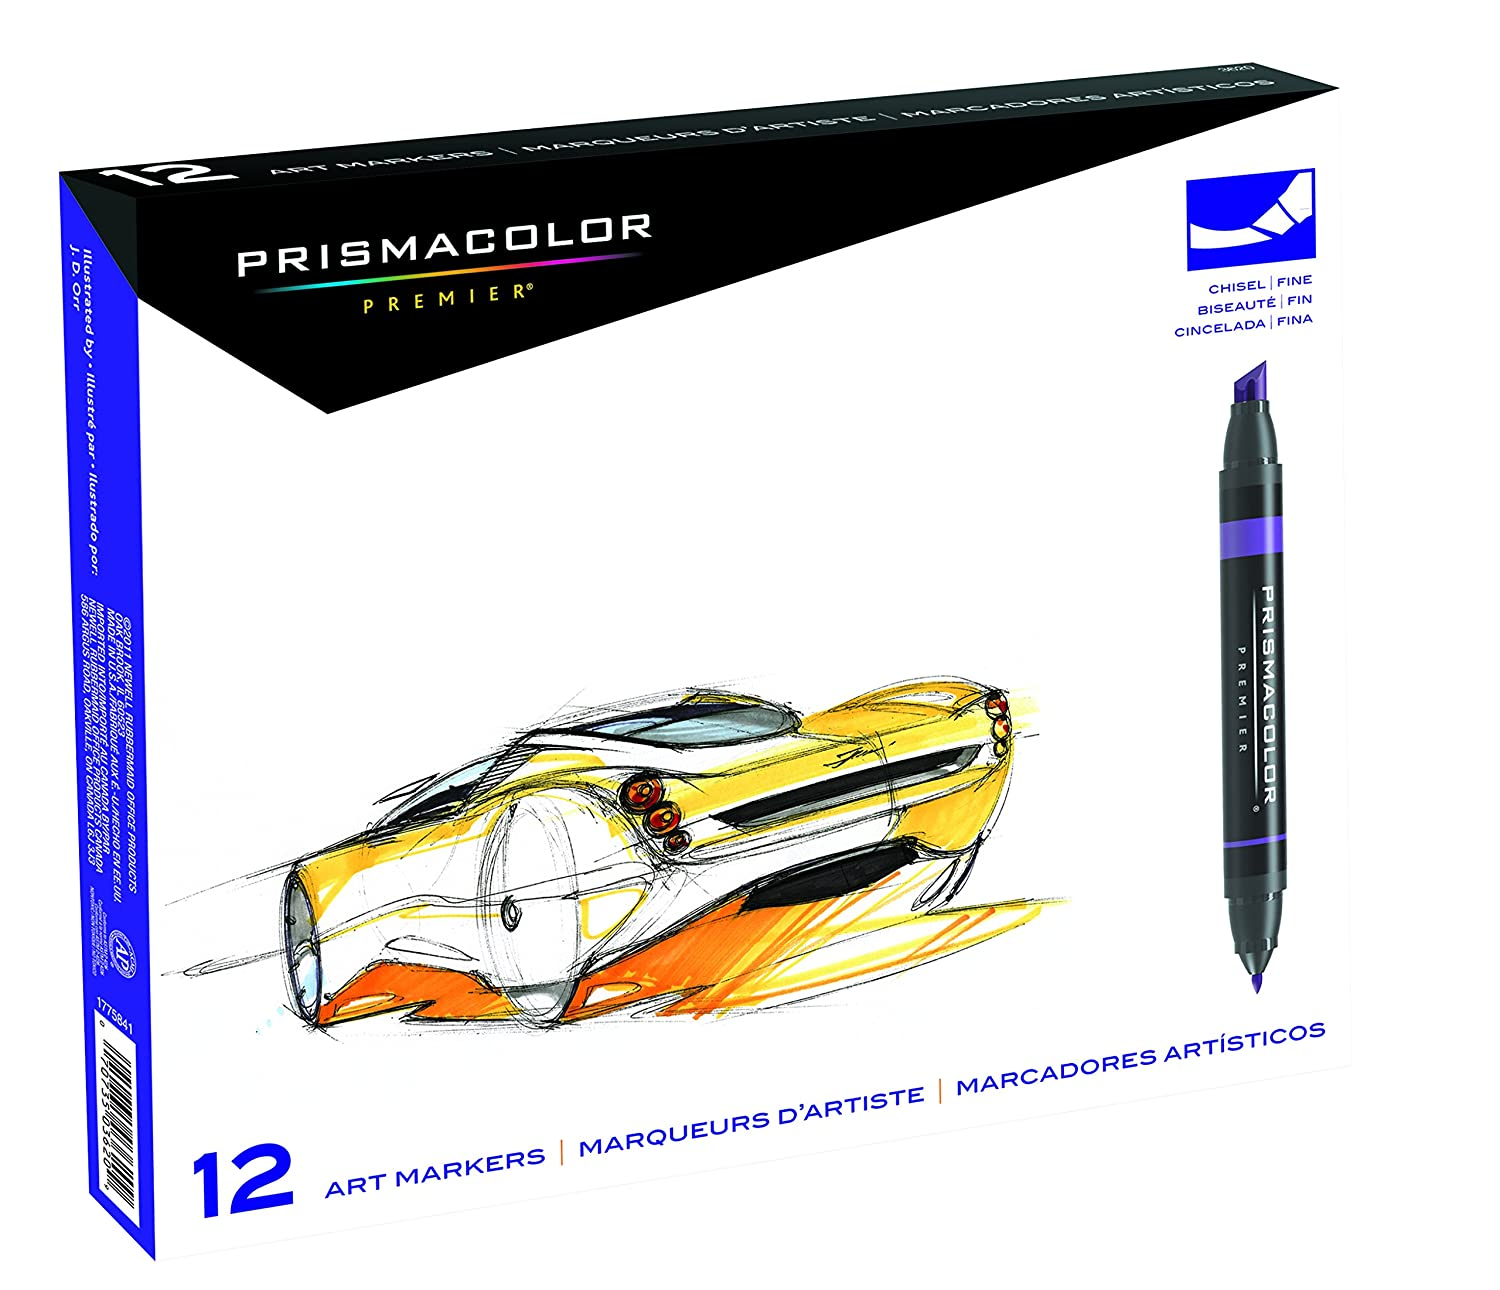 Art color markers - Amazon Com Prismacolor Premier Double Ended Art Markers Fine And Chisel Tip 12 Count Artists Markers Office Products